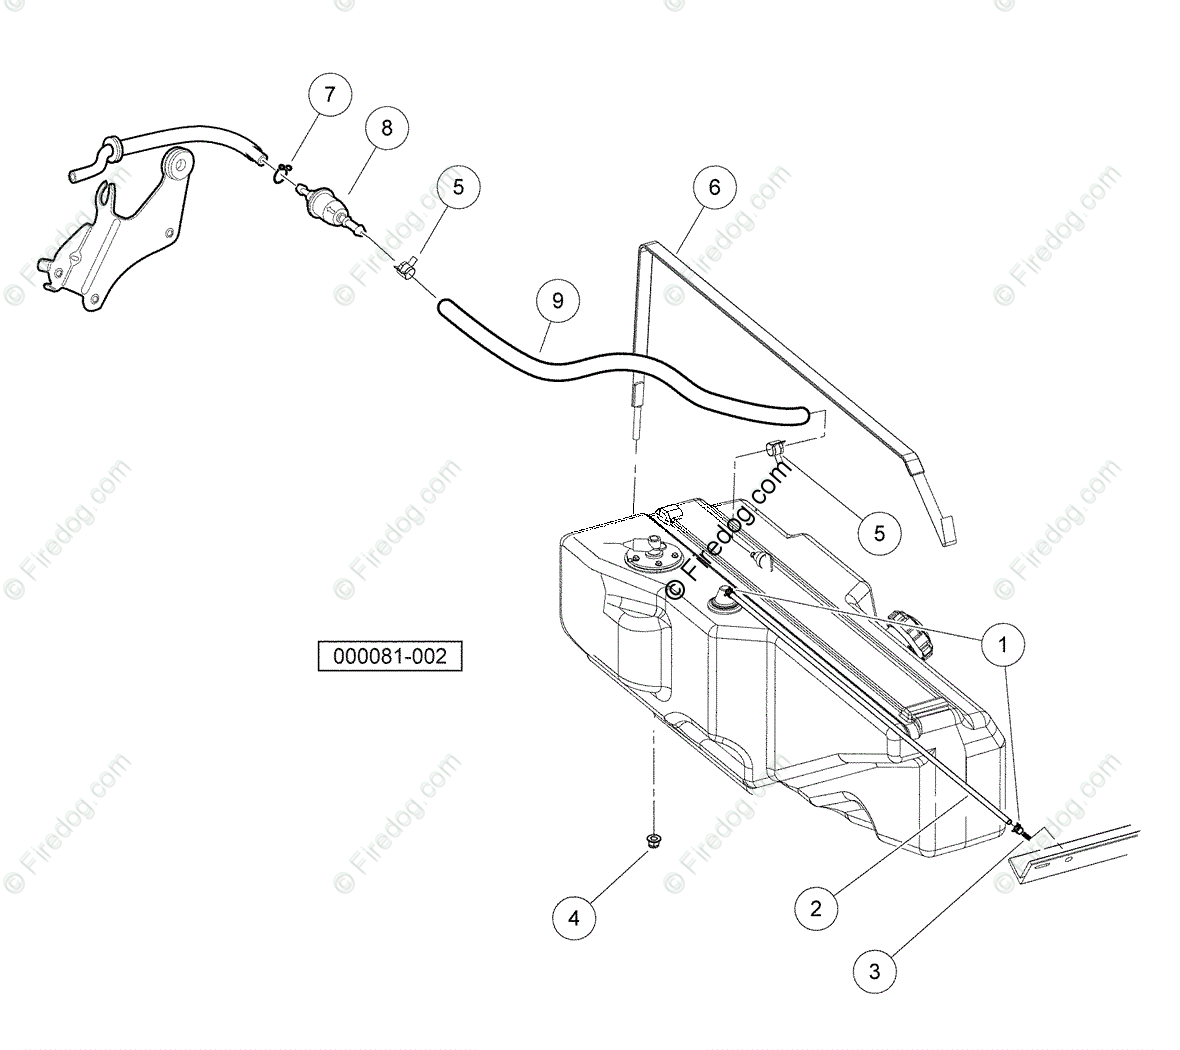 hight resolution of husqvarna utility vehicle huv 4420 2006 11 oem parts diagram for fuel system gasoline vehicles firedog com